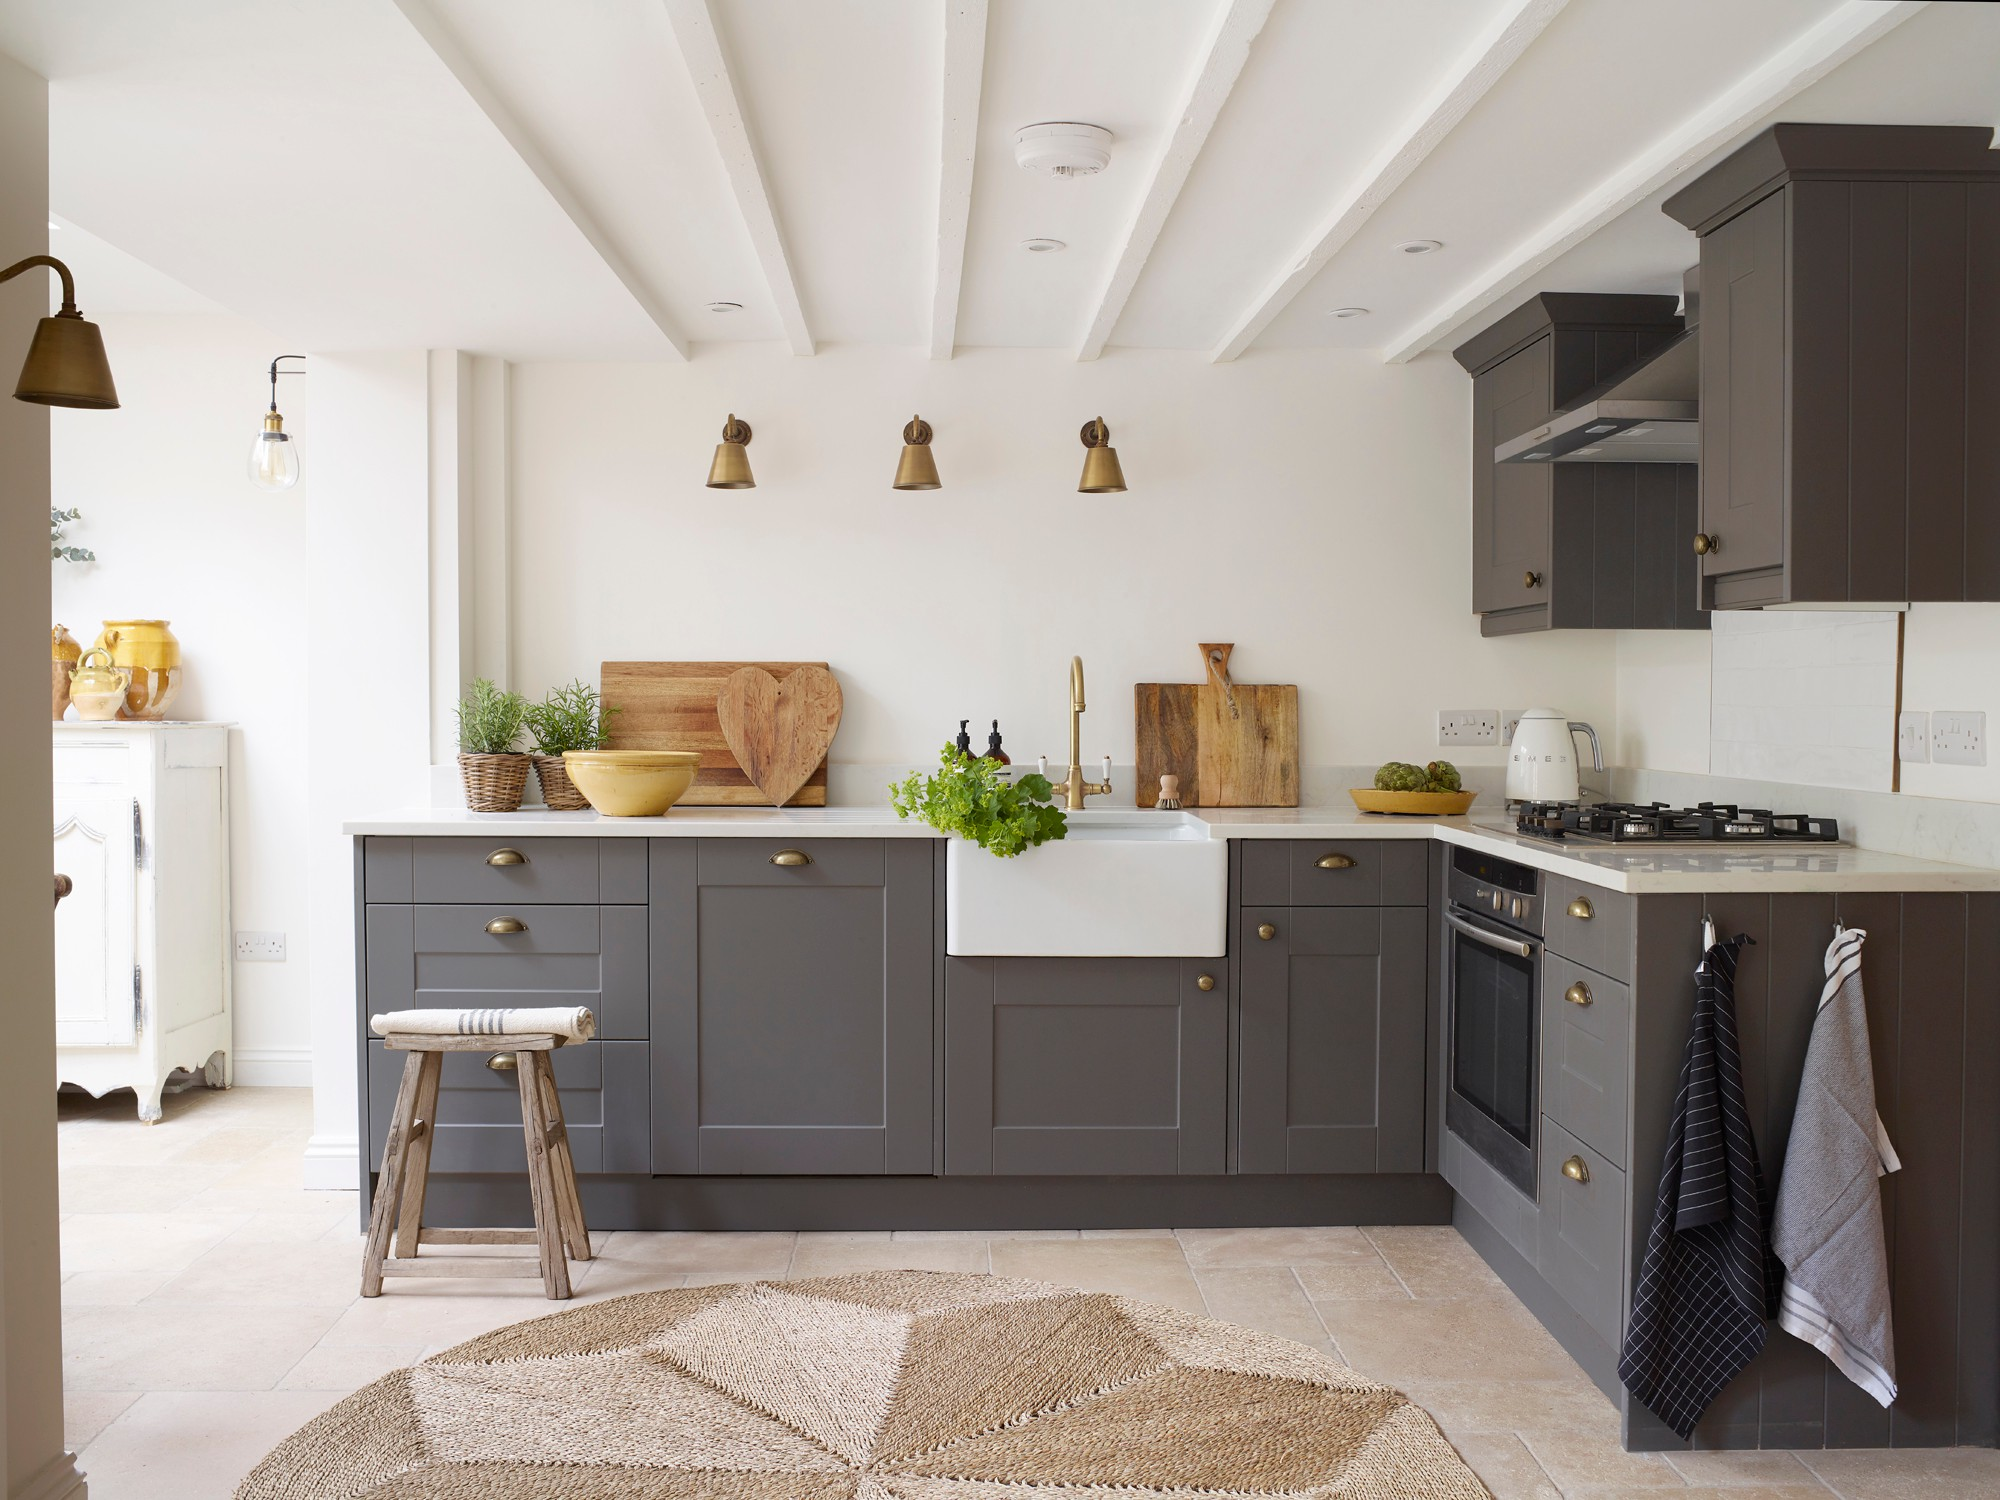 75 Beautiful Farmhouse Kitchen With No Island Pictures Ideas December 2020 Houzz